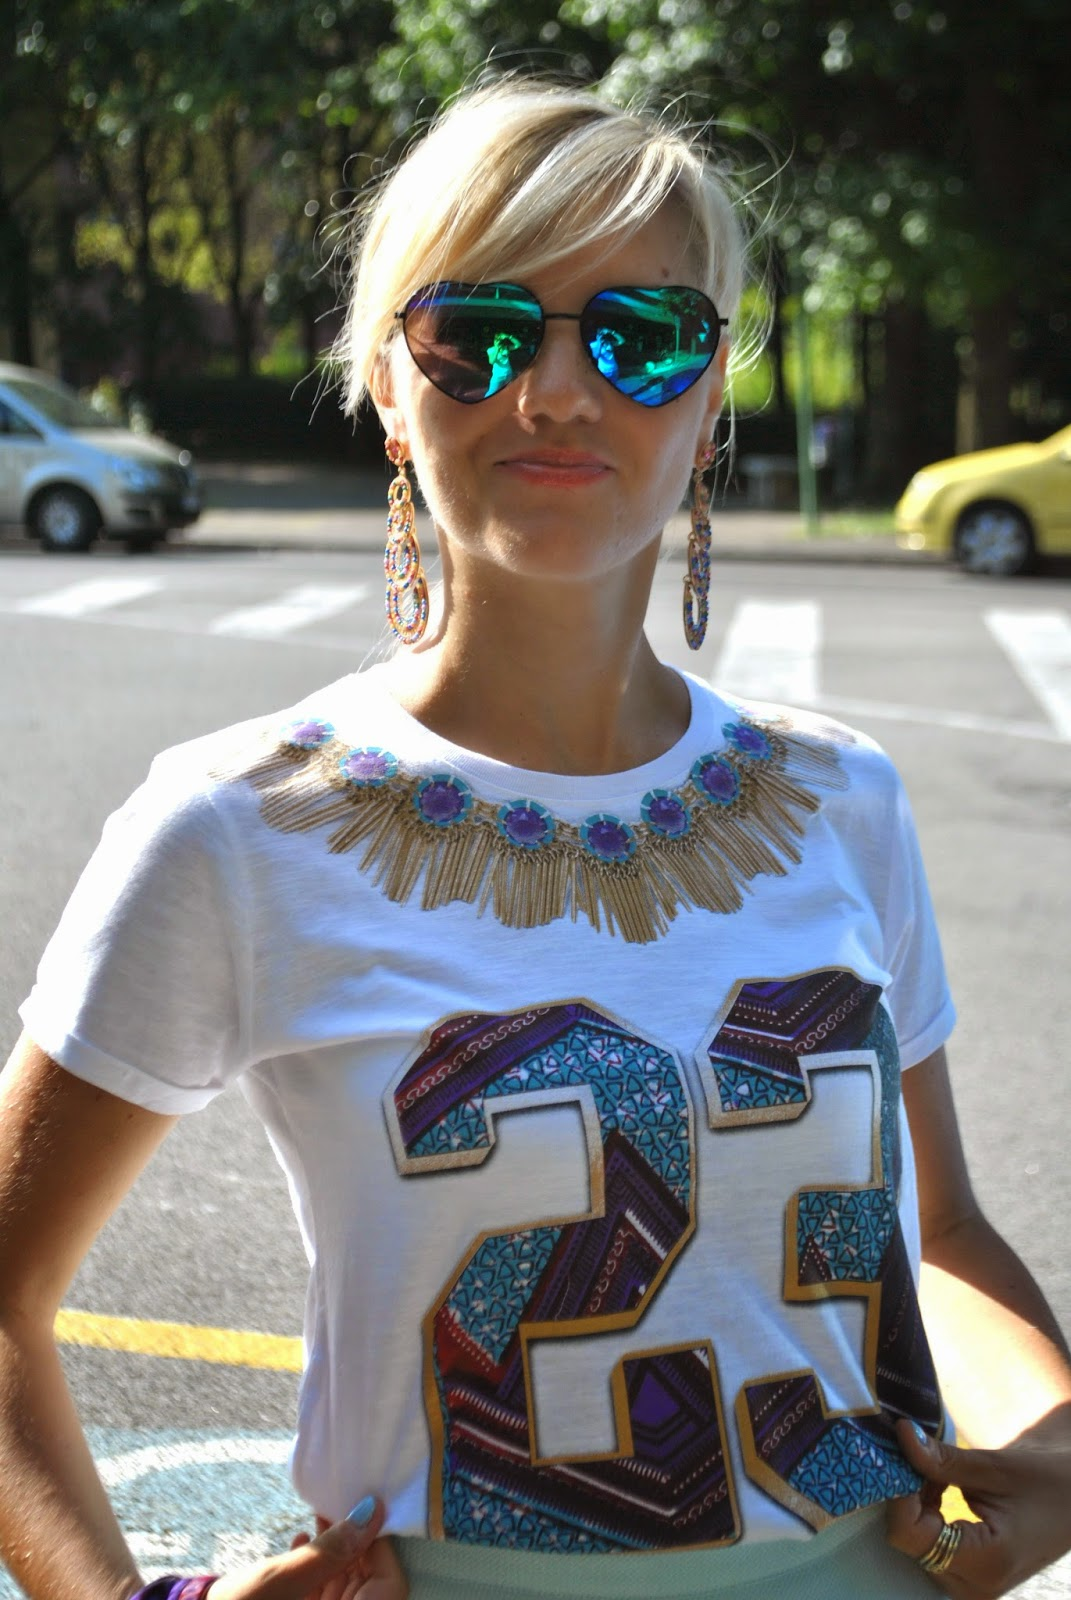 outfit gonna a ruota e t-shirt outfit gonnaa ruota verde acqua outfit gonnaa ruota turchese outfit tee trend orecchini majique scarpe il laccio occhiali con lenti a cuore maglia tee trend con il numero 23 stampato e maxi collana disegnata abbinamenti gonna e t-shirt outfit gonna e t-shirt outfit gonna e tacchi outfit estivi outfit estate 2014 outfit estivi ragazza outfit settembre 2014 outfit round skirt outfit t-shirt and skirt majique jewels majique london earrings majique fashion bloggers italy fashion blogger italiane fashion lookbook street style street style round skirt street style gonna a ruota street style t-shirt outfit mariafelicia magno fashion blogger di colorblock by felym outfit di colorblock by felym fashion blog di mariafelicia magno fashion blogger bionde milano smalto azzurro